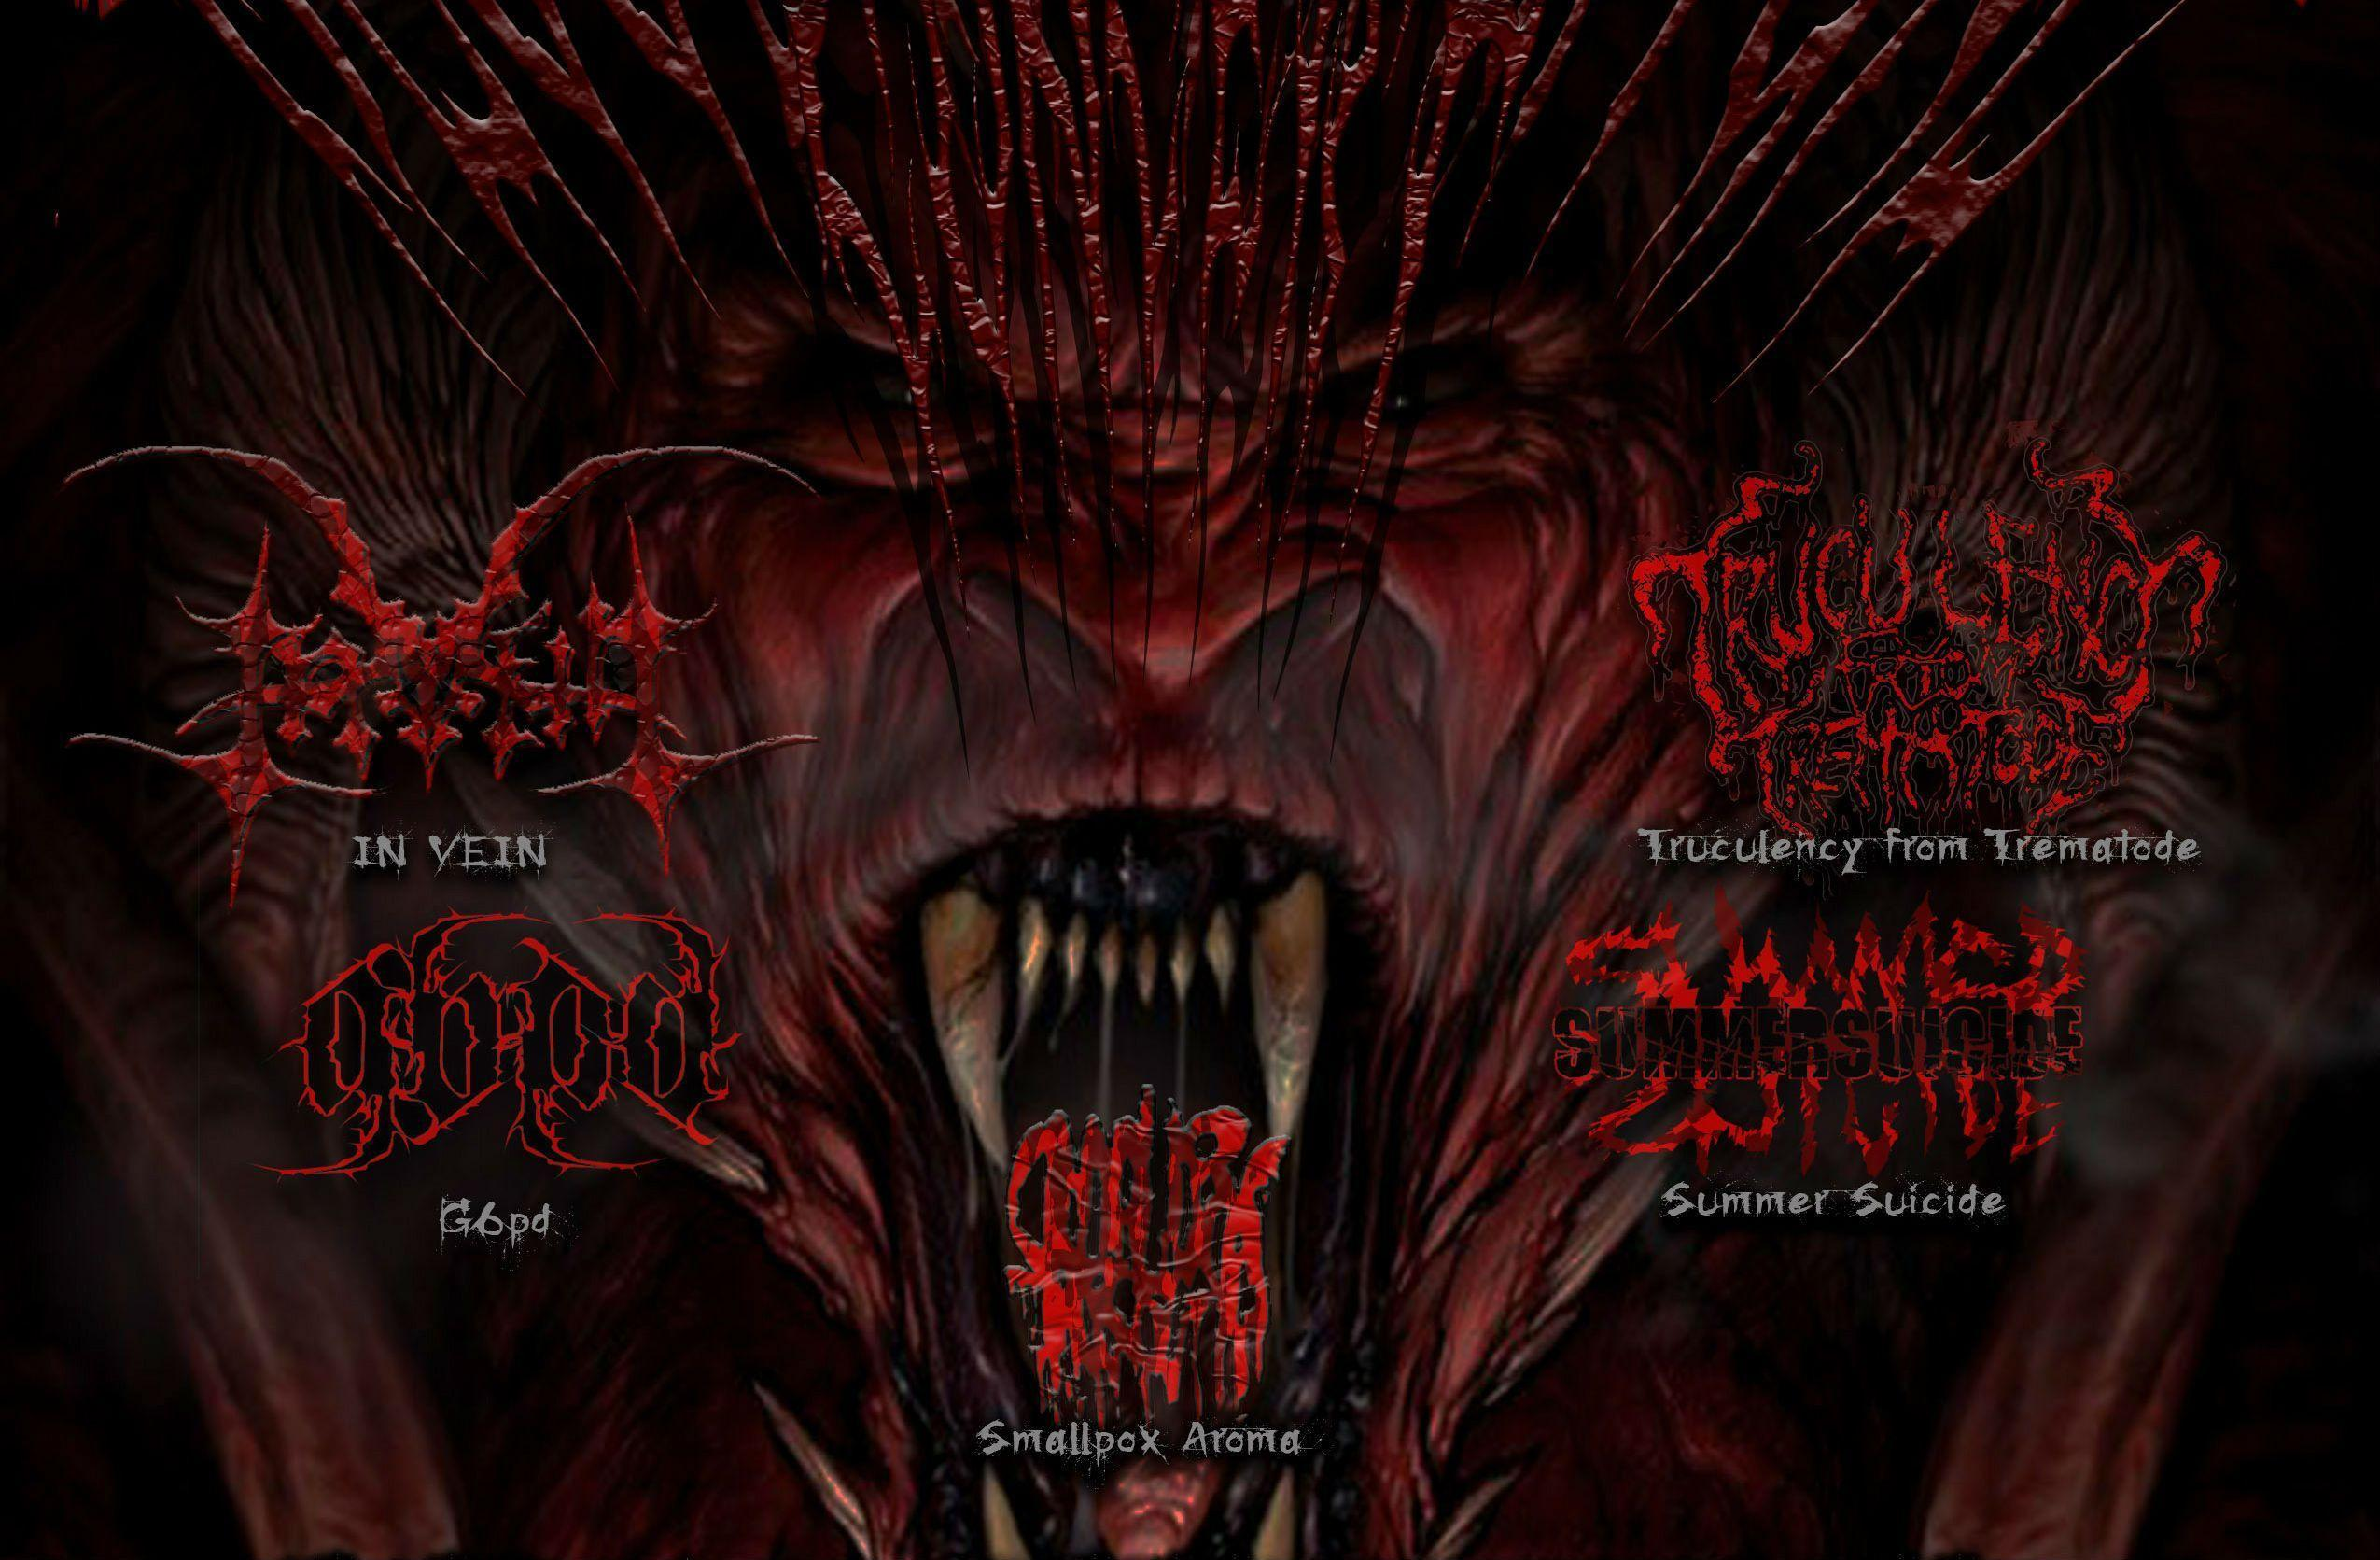 BLOODBATH death metal heavy hq wallpapers